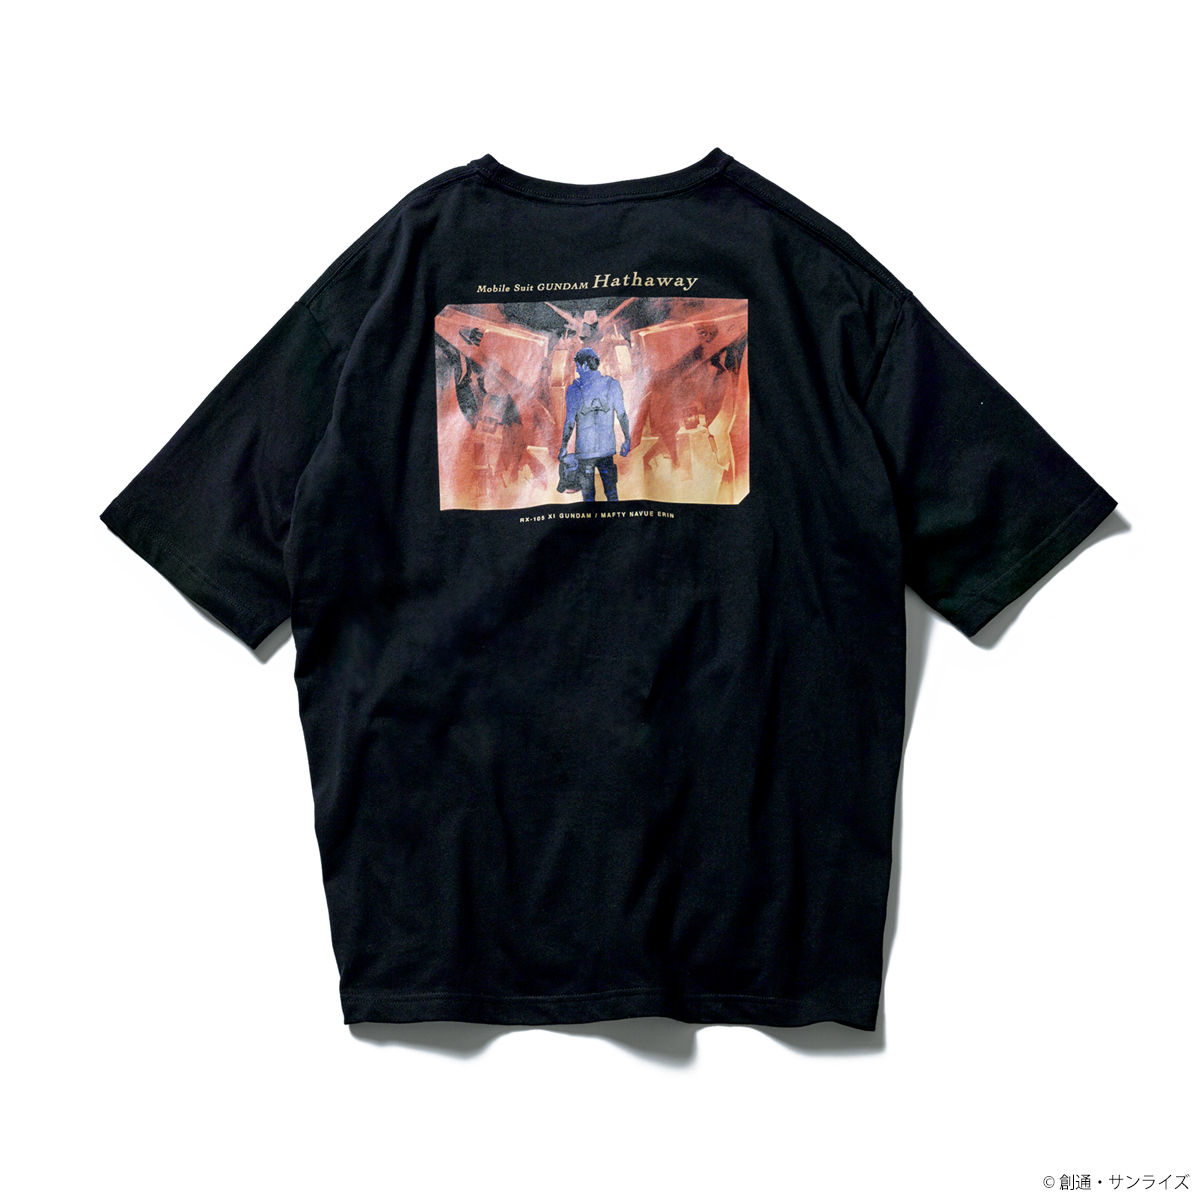 Hathaway T-shirt—Mobile Suit Gundam Hathaway/STRICT-G Collaboration [Feb 2022 Delivery]